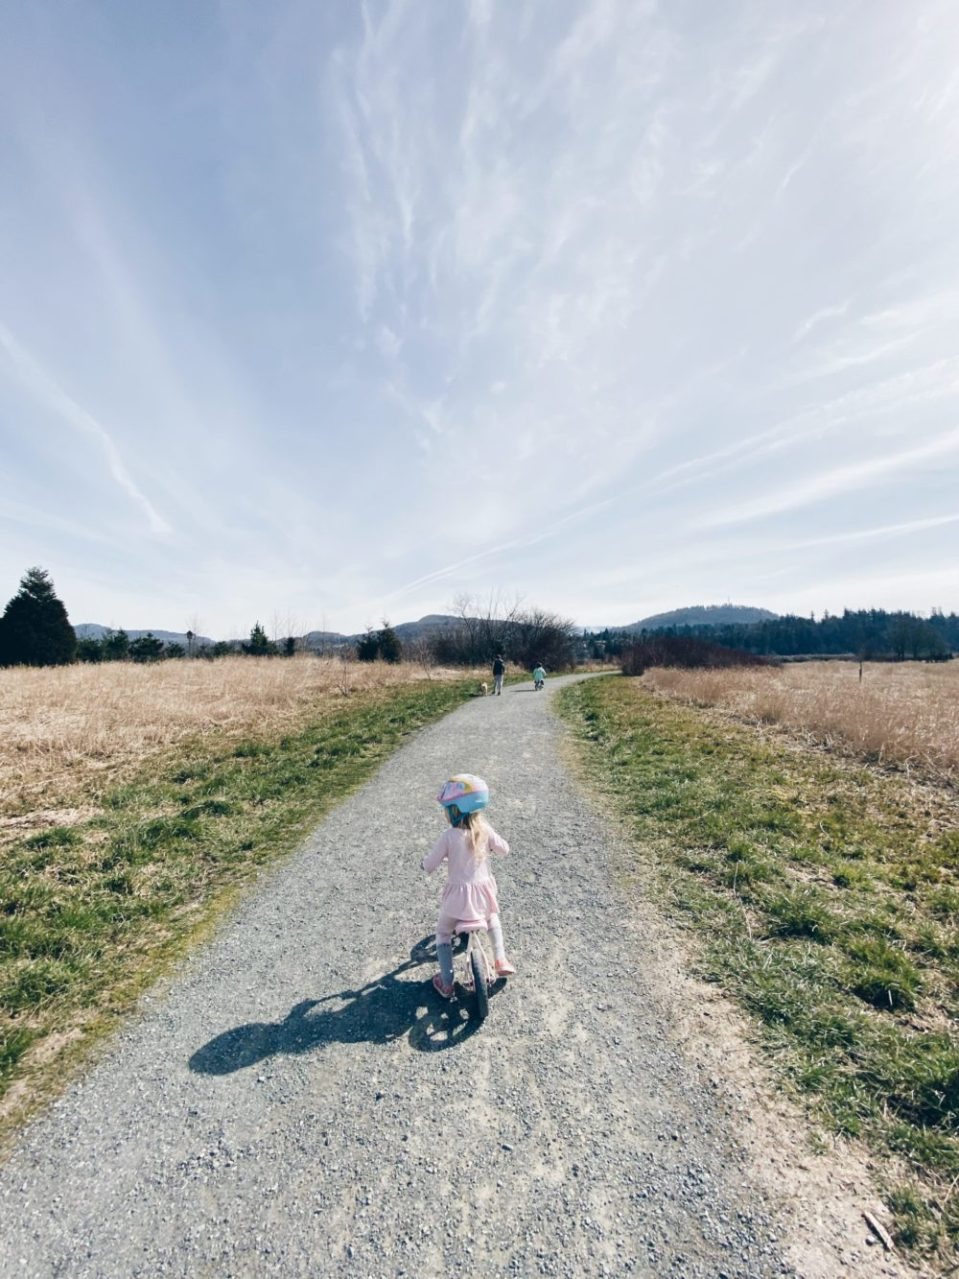 Willband Park | List of walks and hikes for kids in abbotsford and the fraser valley